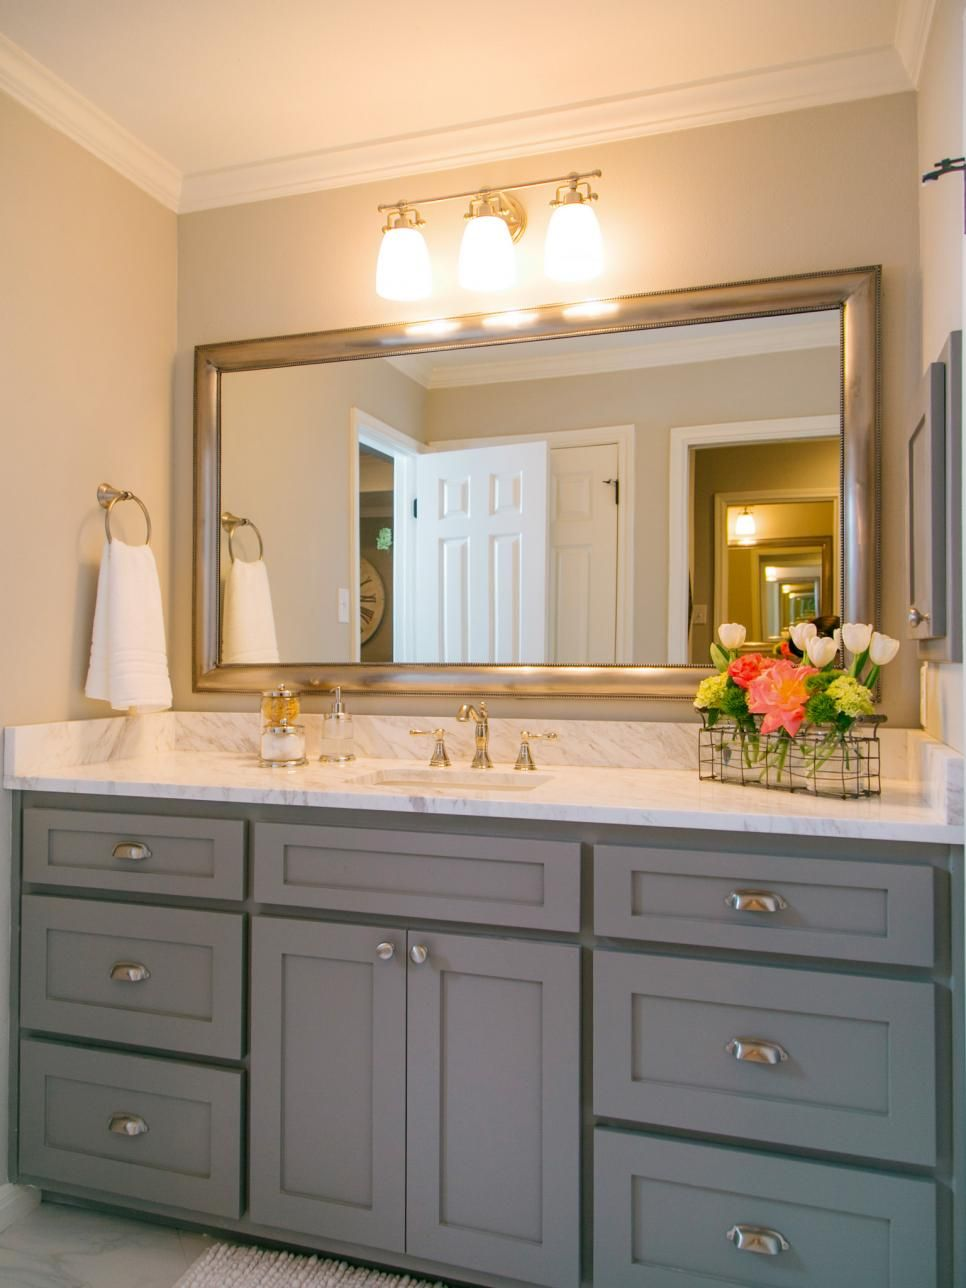 Peachy Fixer Upper A Ranch Home Update In Woodway Texas Download Free Architecture Designs Scobabritishbridgeorg